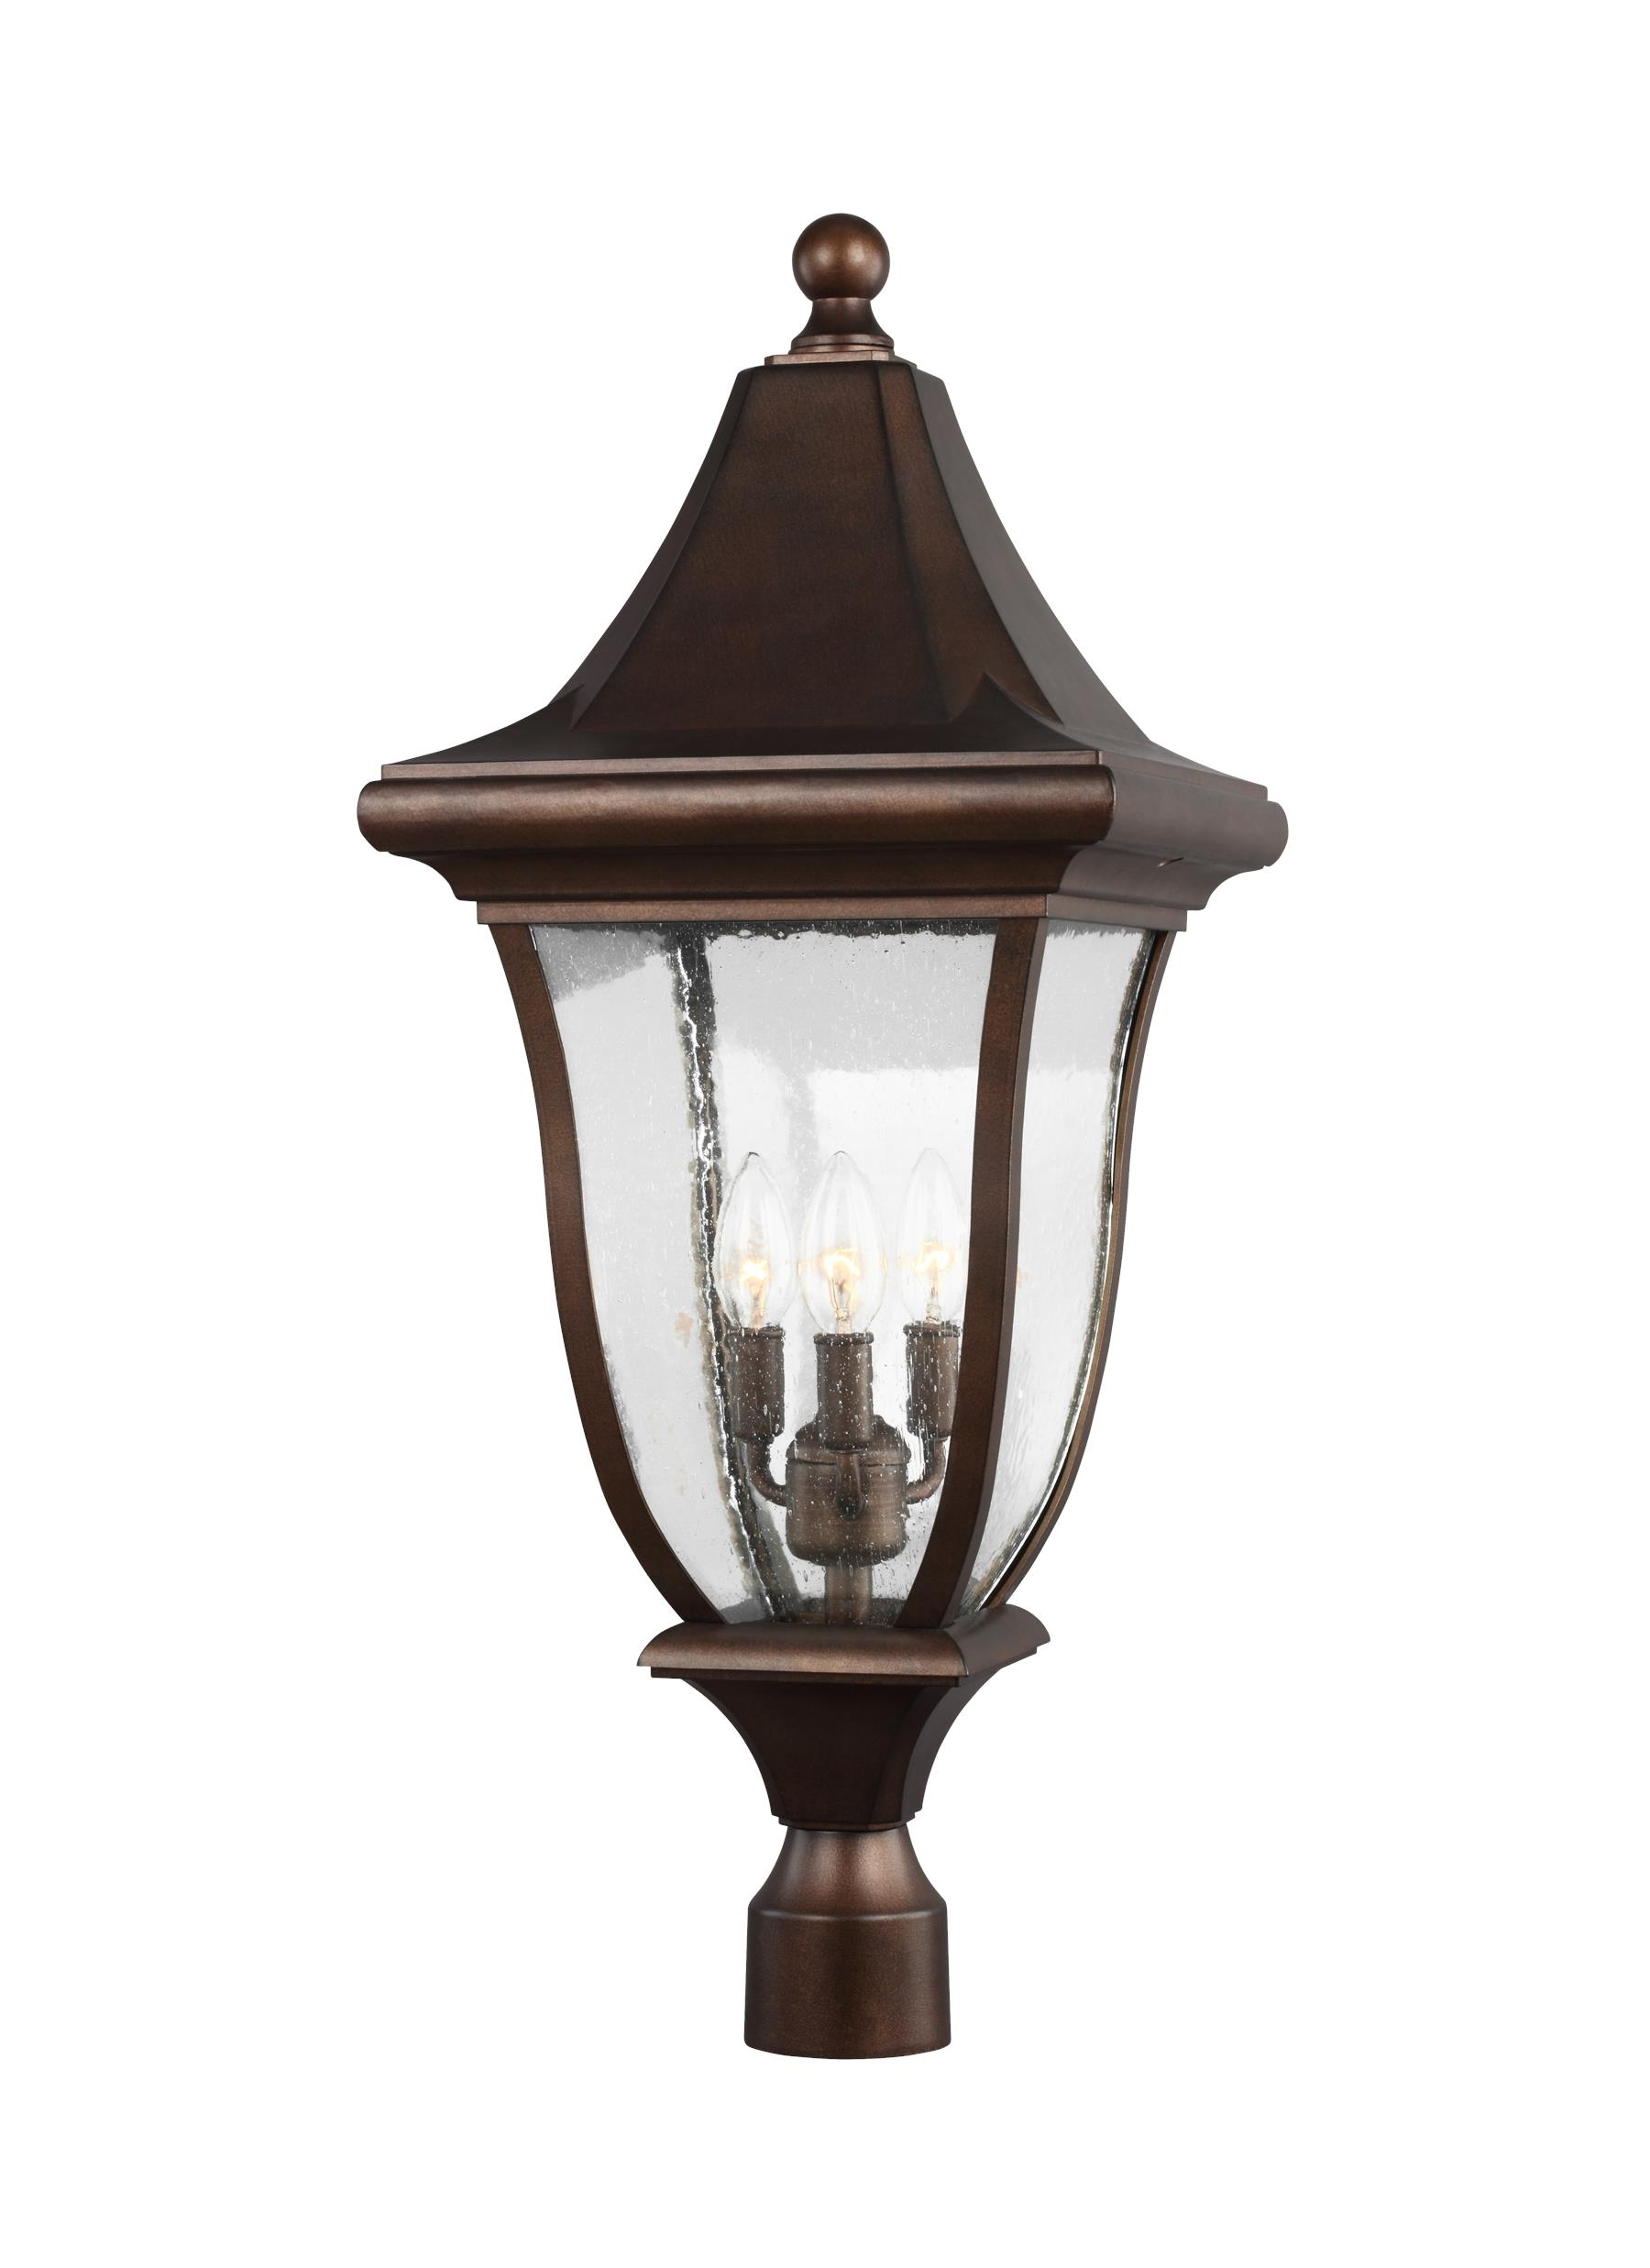 Ol13107ptbz,3 – Light Outdoor Post Lantern,patina Bronze Intended For Most Recently Released Outdoor Post Lights Kichler Lighting (View 14 of 20)